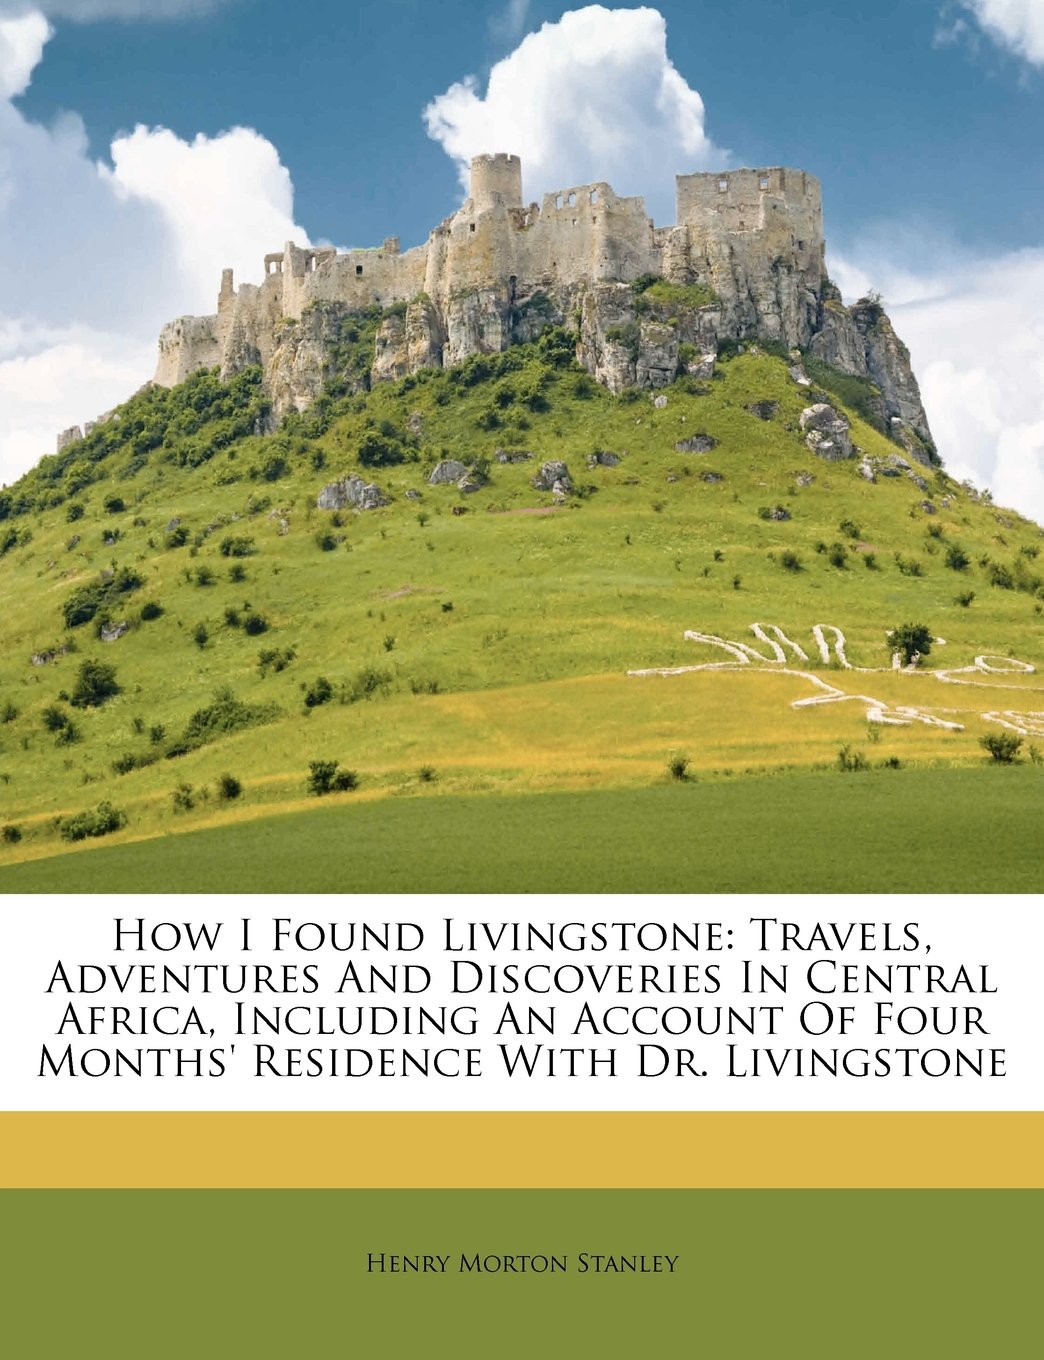 How I Found Livingstone: Travels, Adventures And Discoveries In Central Africa, Including An Account Of Four Months' Residence With Dr. Livingstone pdf